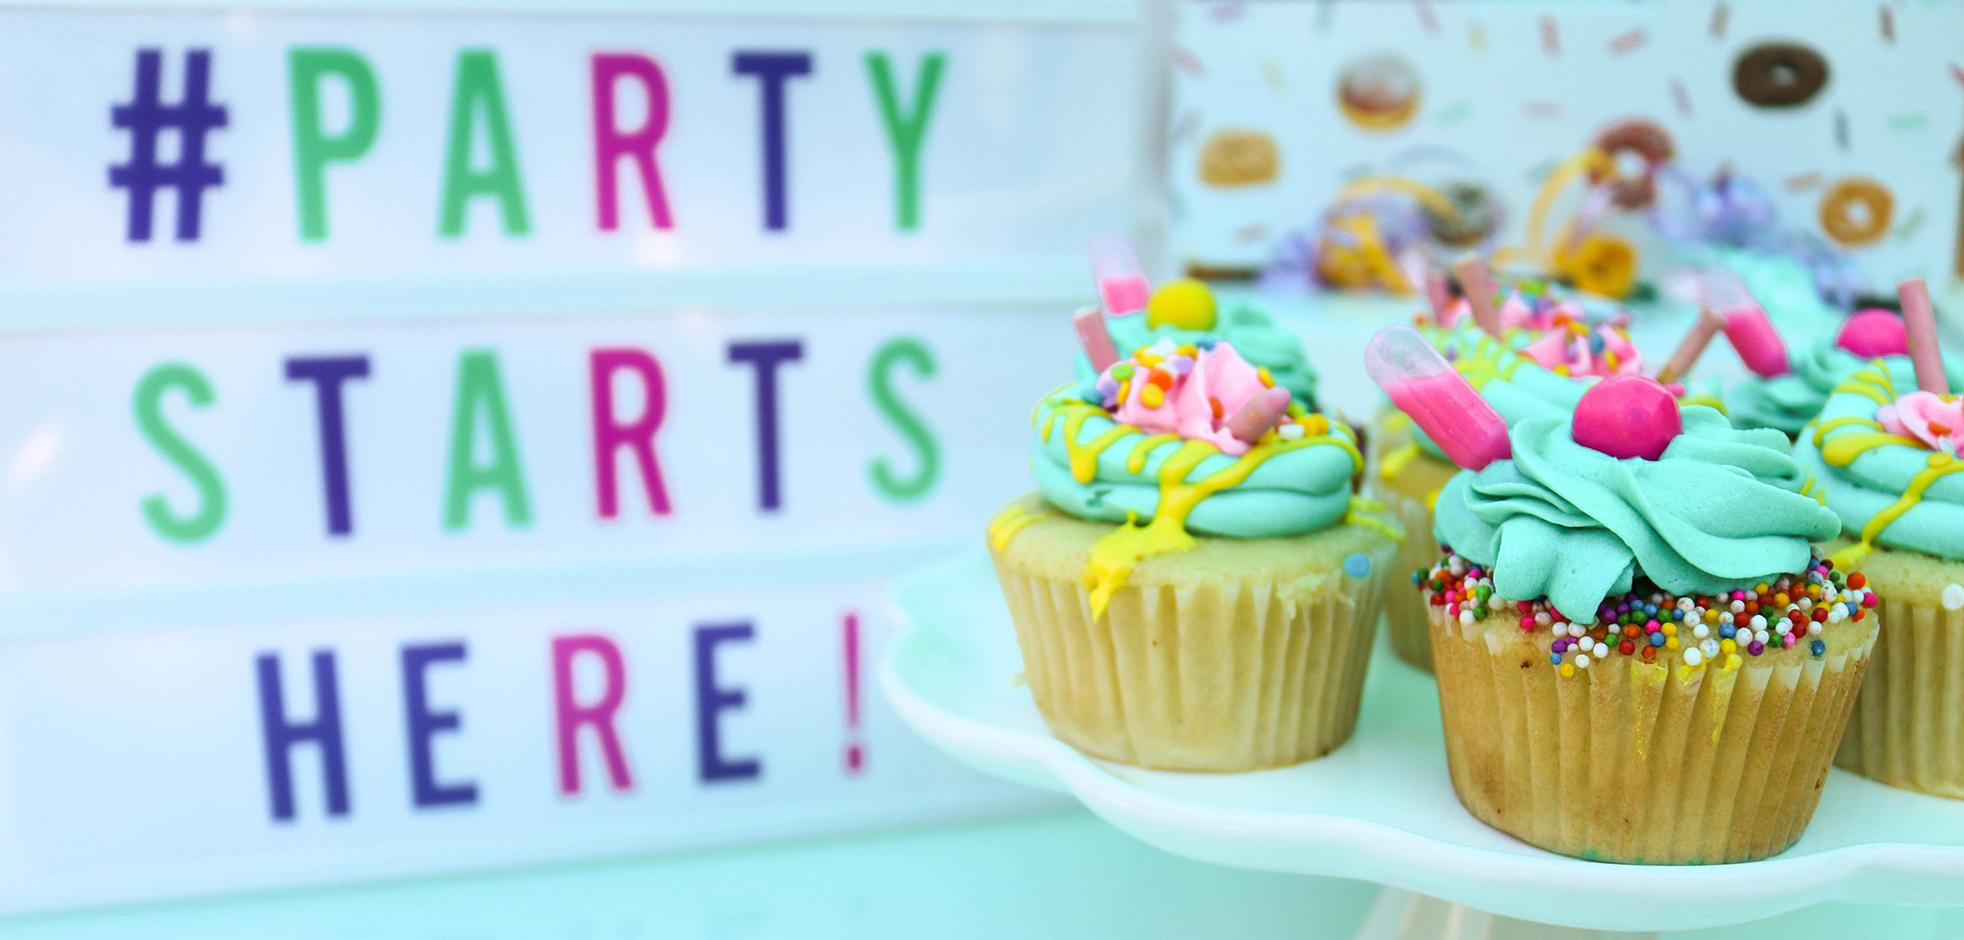 A group of colourful cupcakes on a stand with a sign that reads 'The Party Starts Here!' in the background